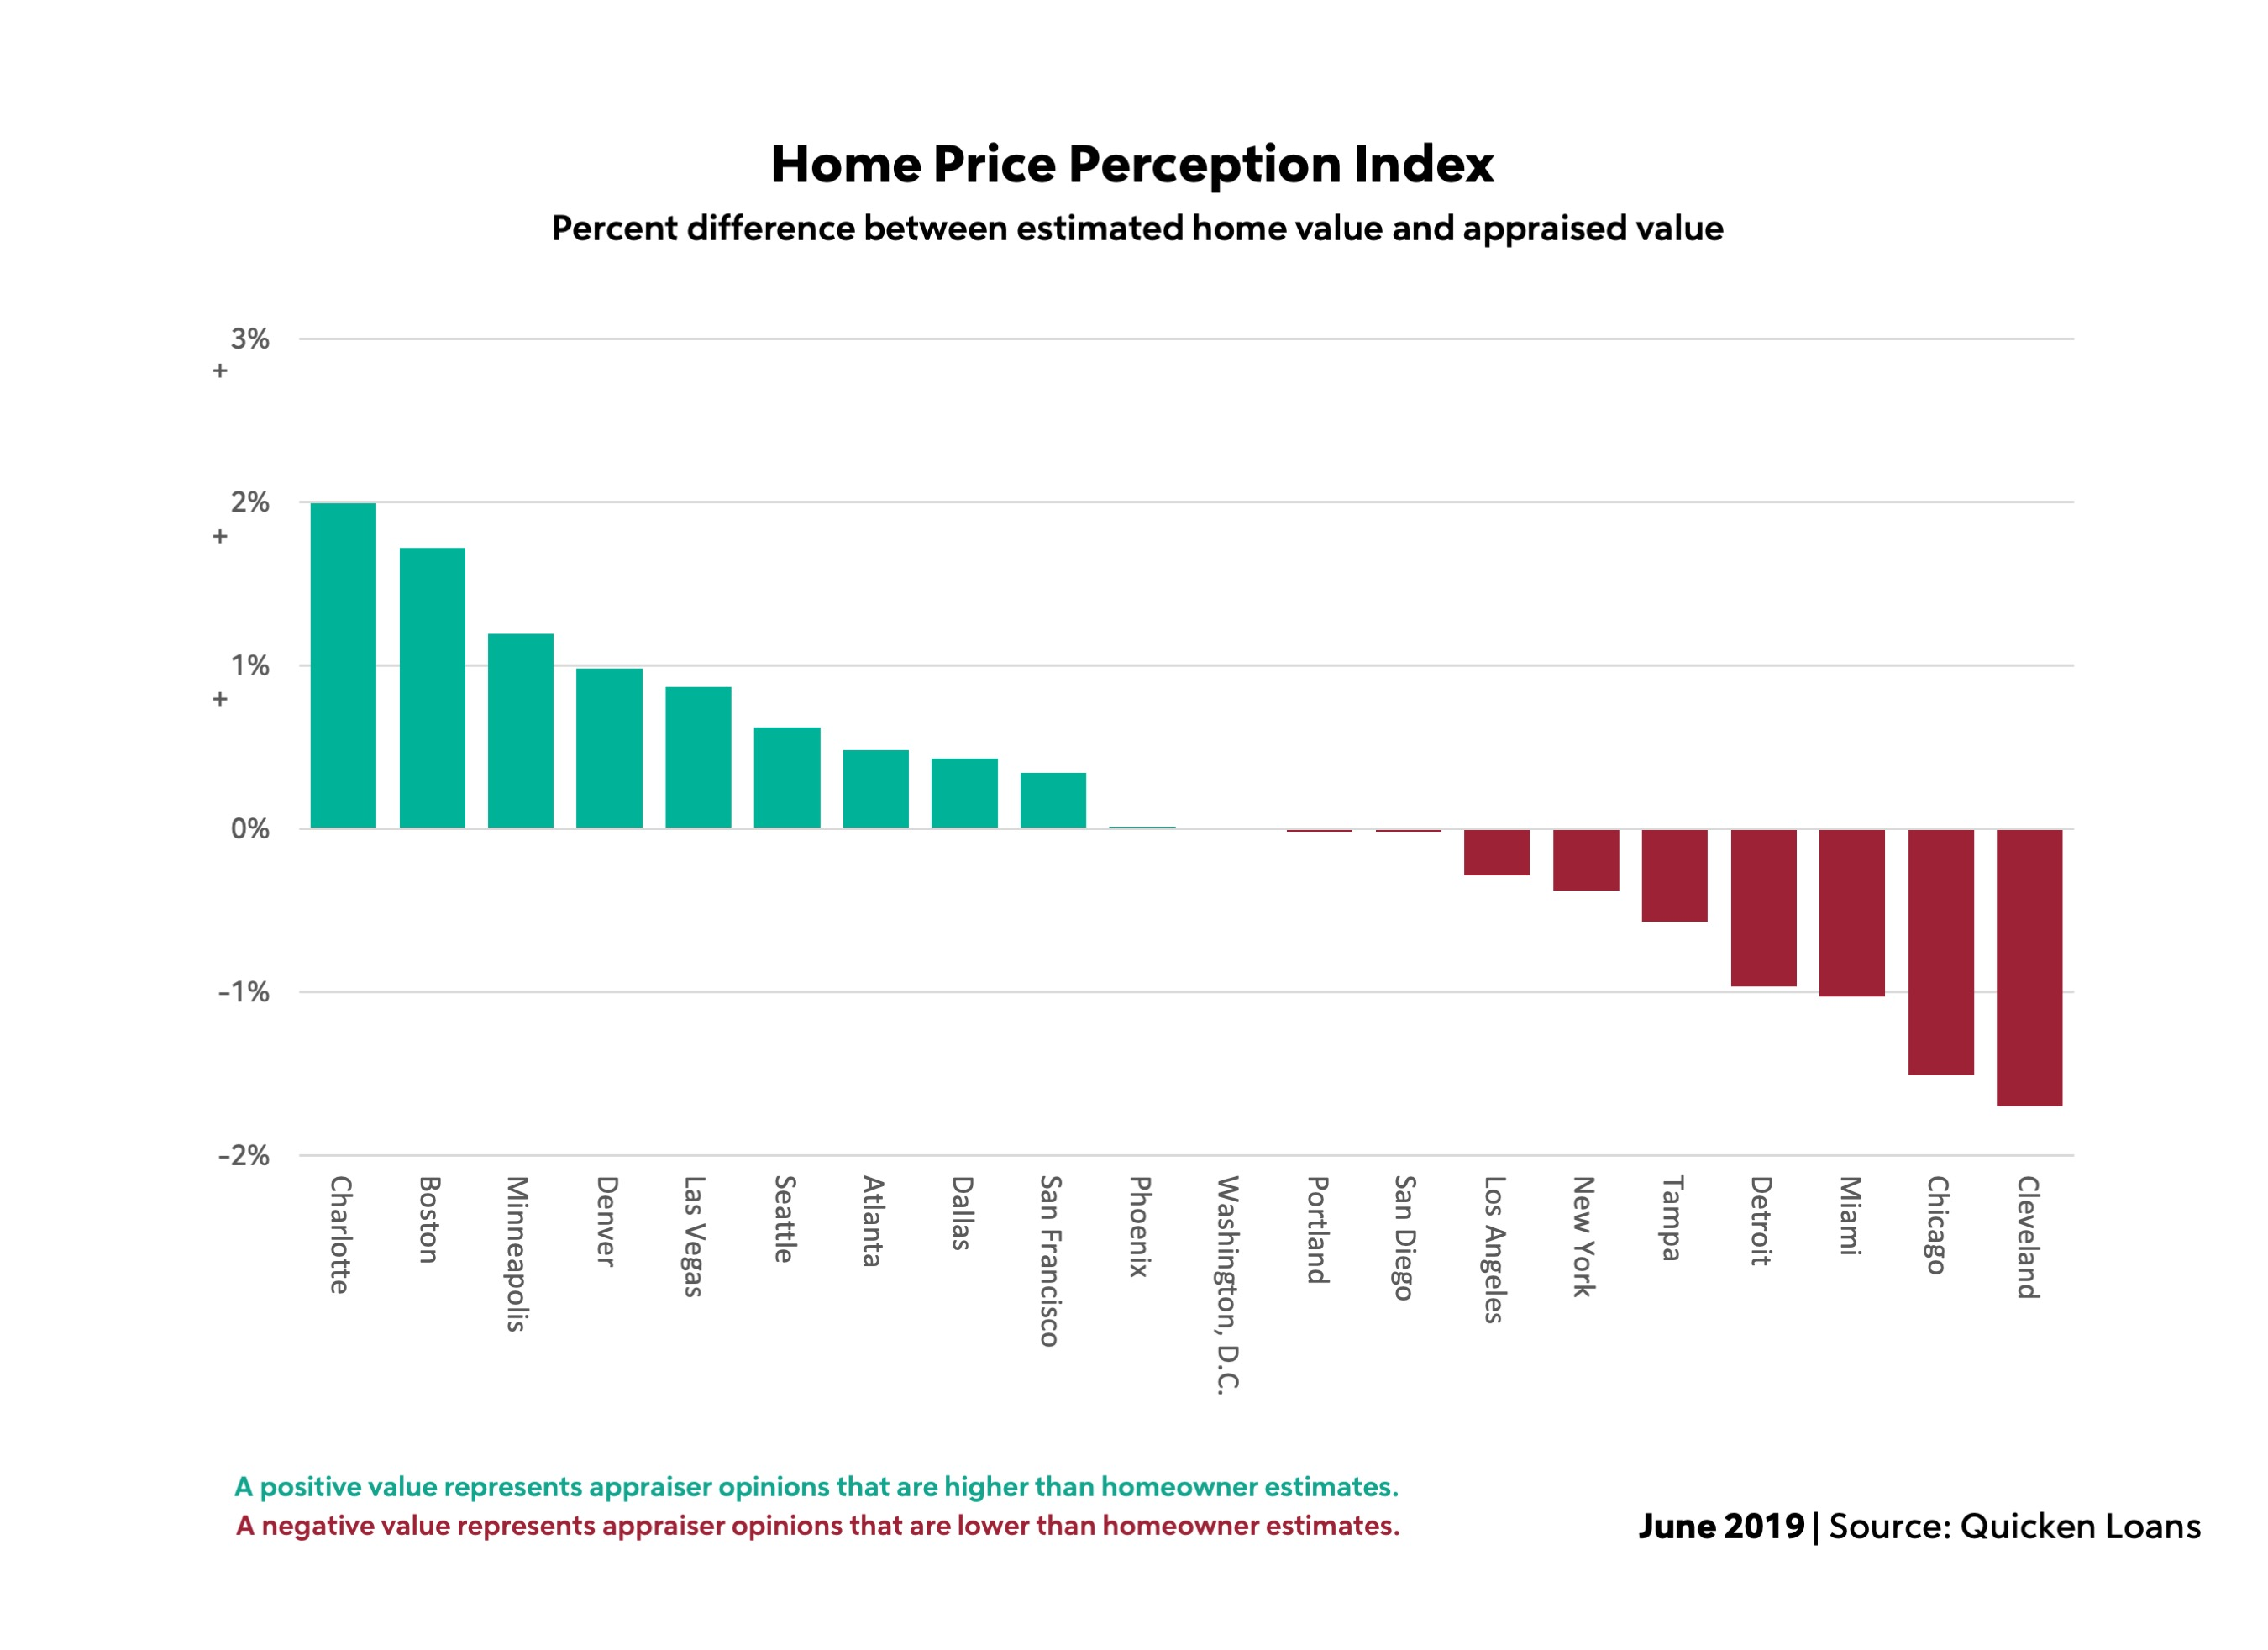 Quicken Loans: Owner Perceptions of Home Values Improve